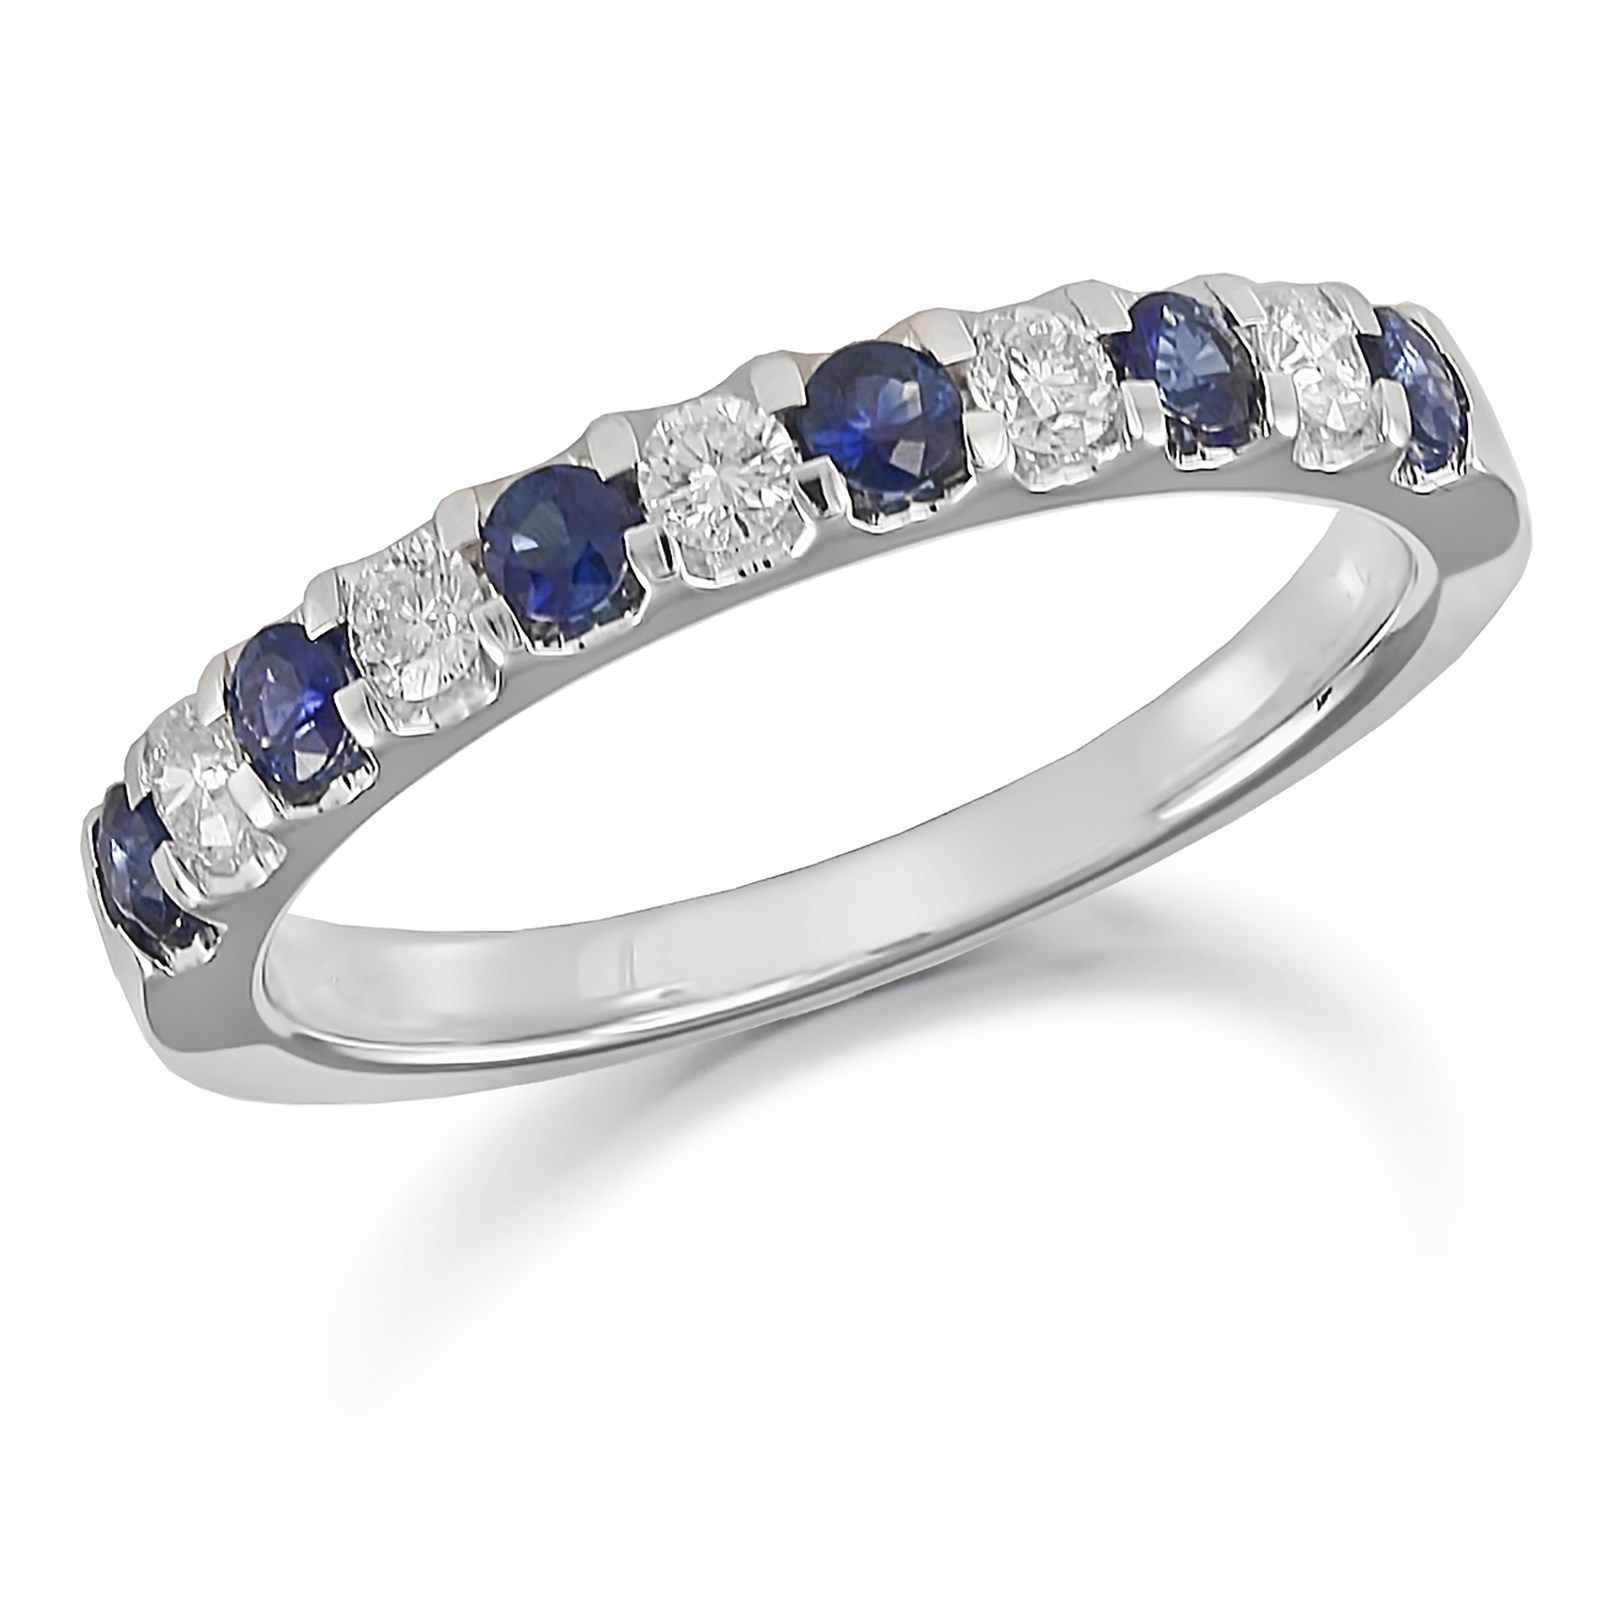 band and bands ring platinum tiffany co a diamond eternity embrace sapphire jewelry